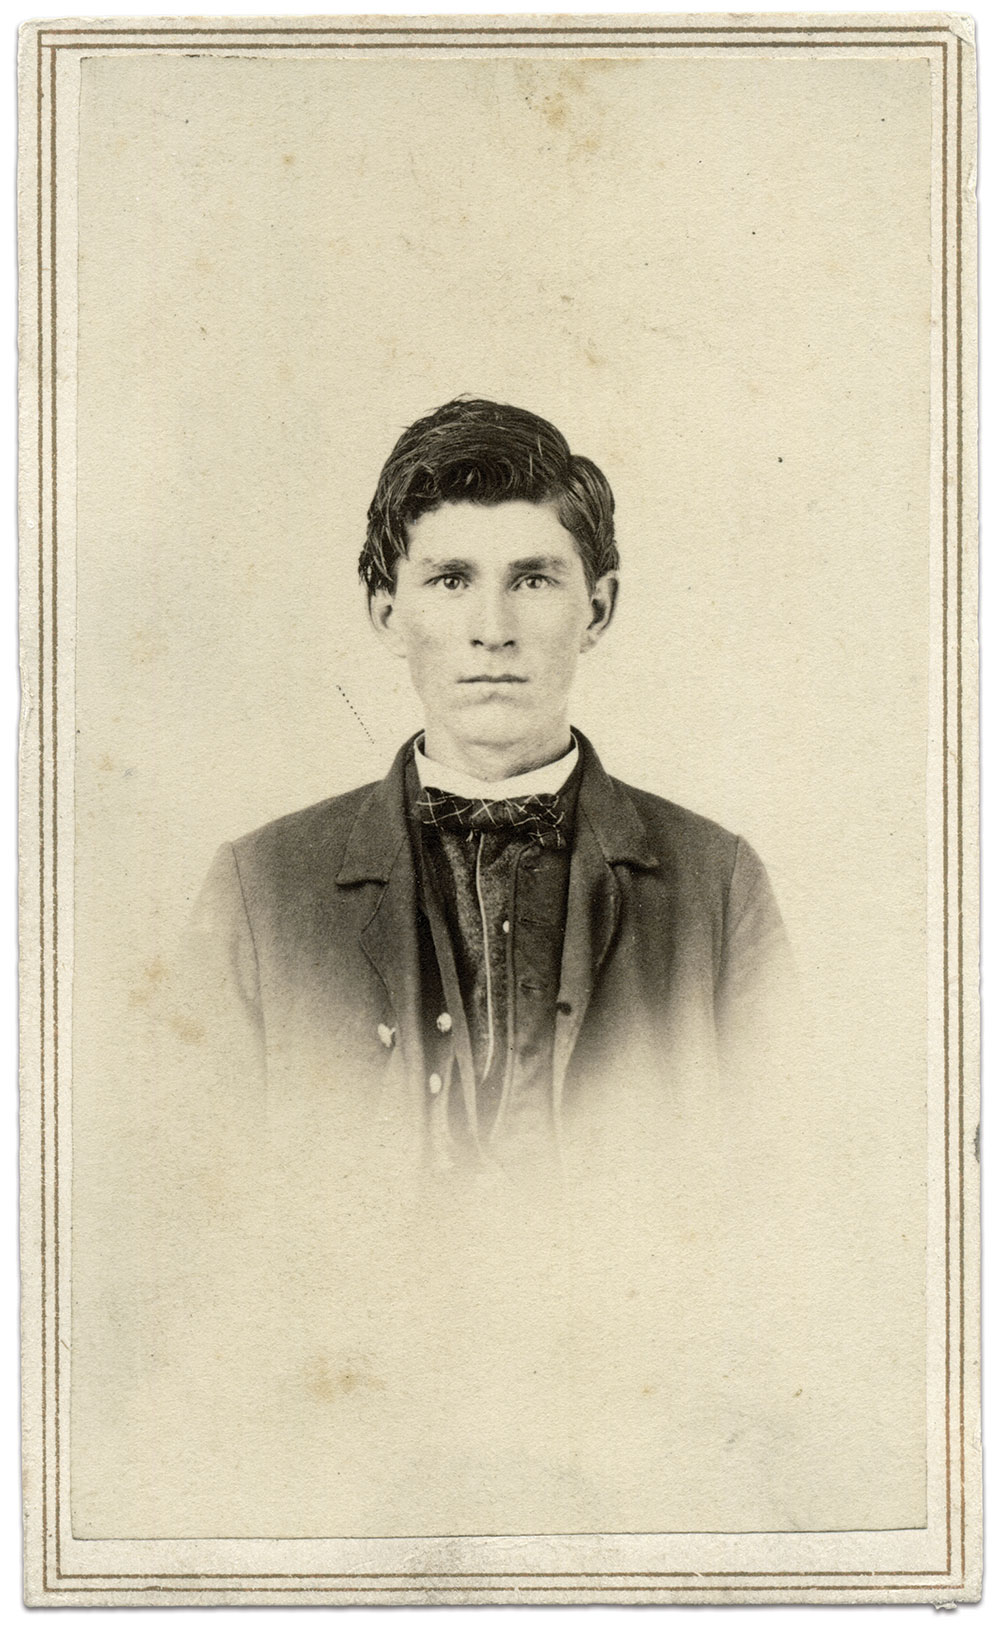 Carte de visite by Higgins & Turill of Jackson, Mich., and Elyria, Ohio. John Fuller Collection.